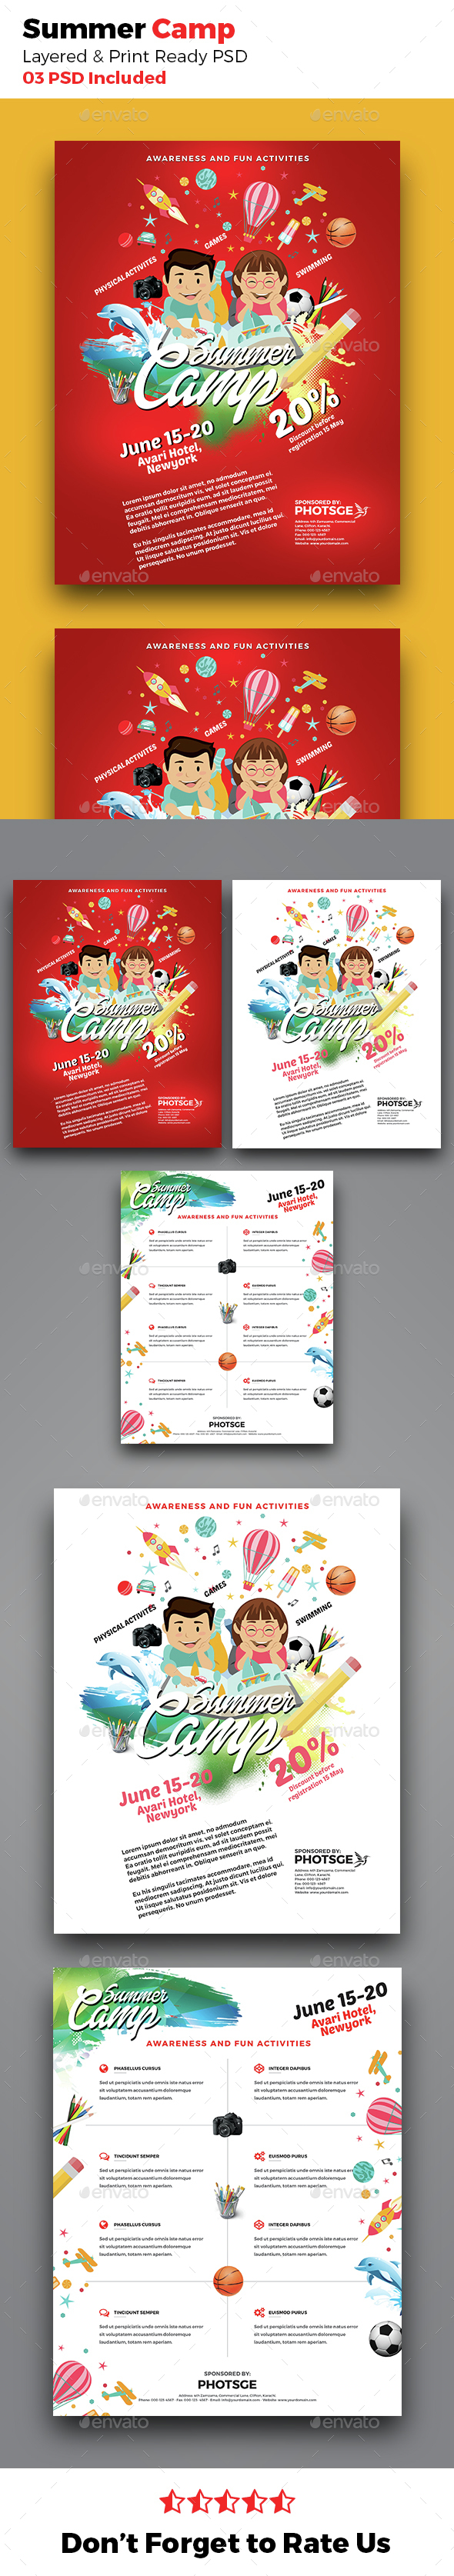 Summer Camp Flyer - Corporate Flyers